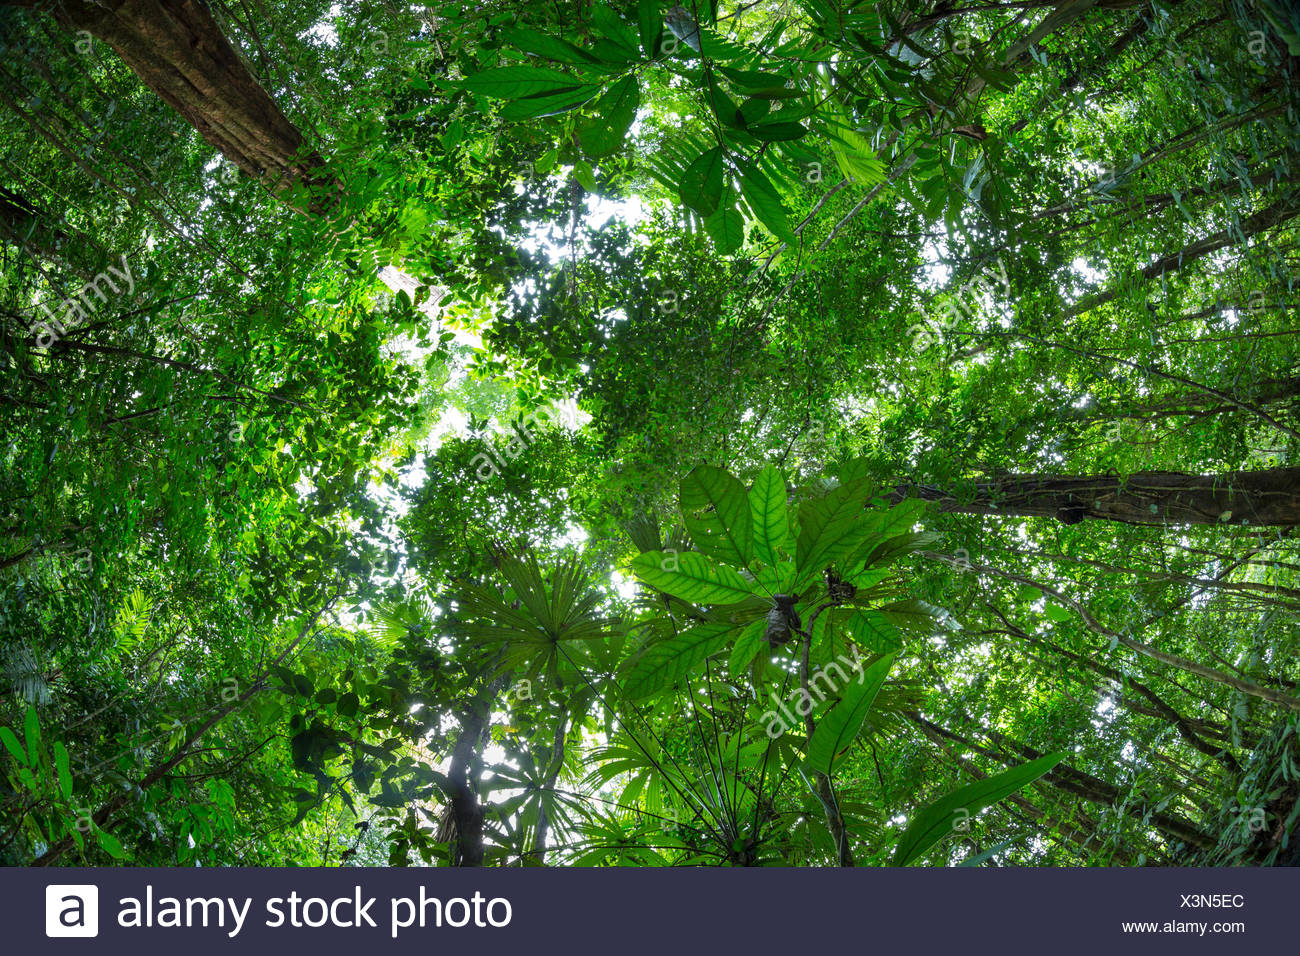 Looking up at rainforest canopy, Osa Peninsula, Costa Rica - Stock Image